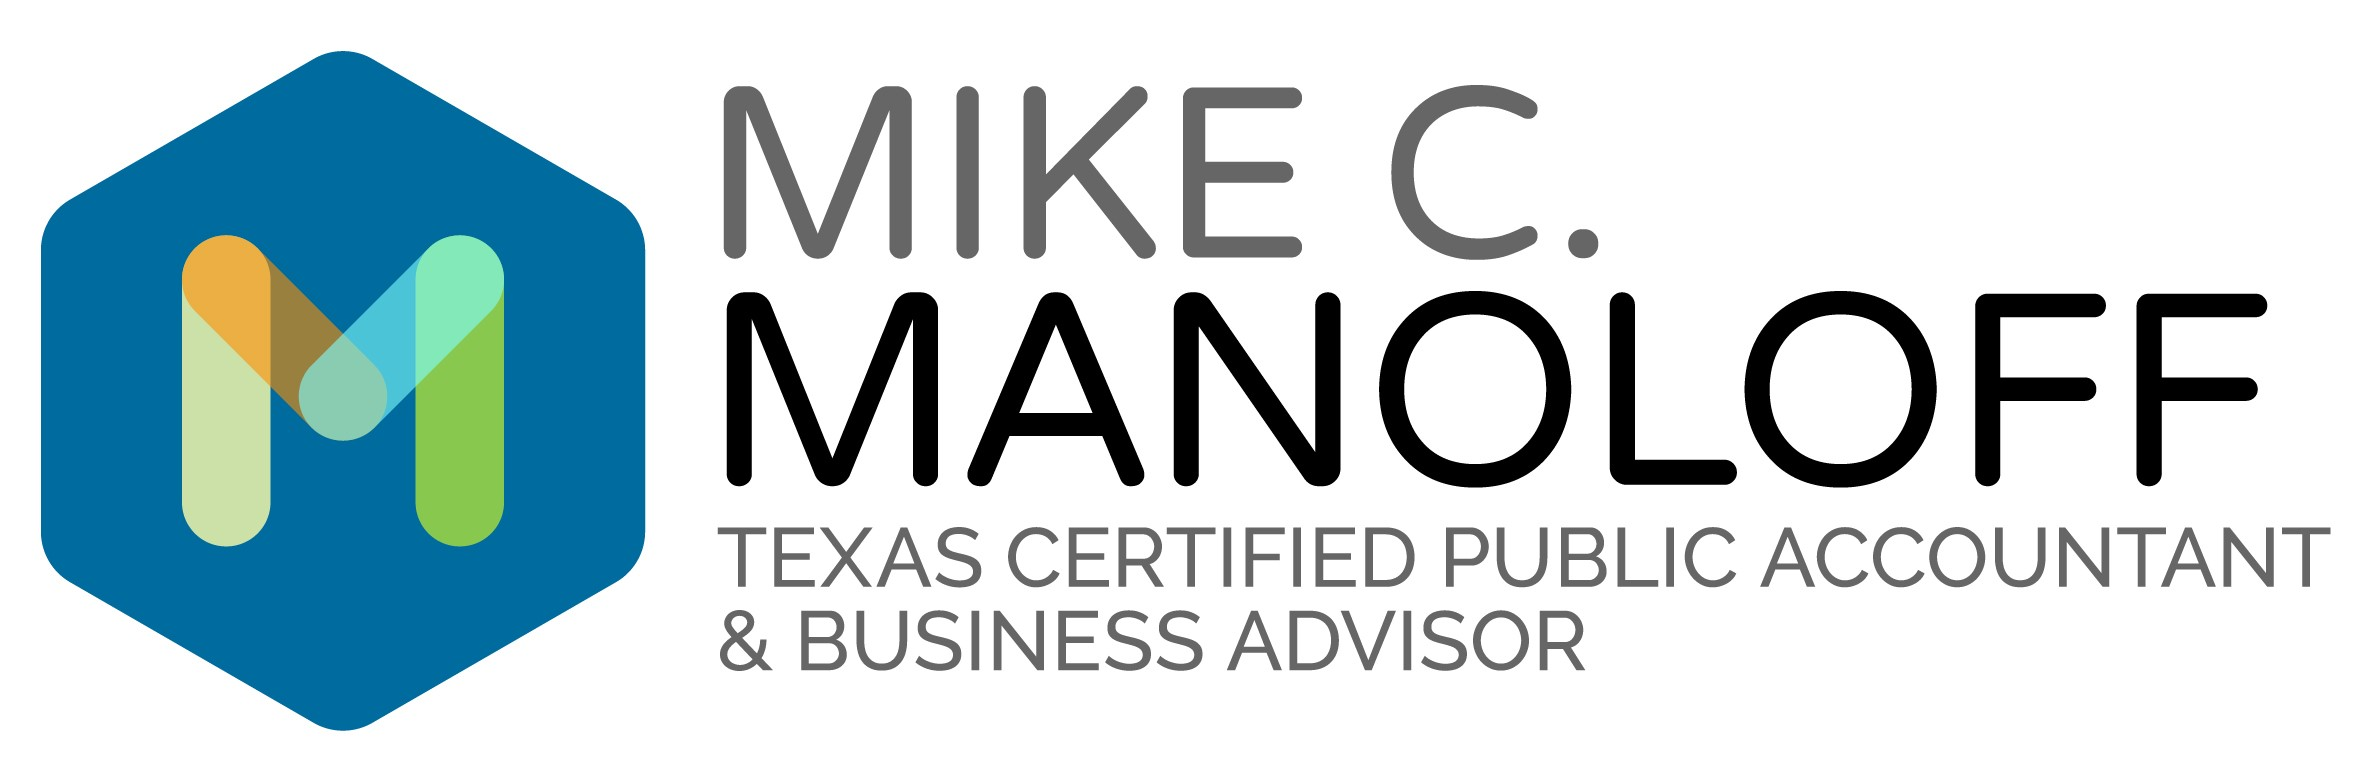 MIKE C. MANOLOFF CPA